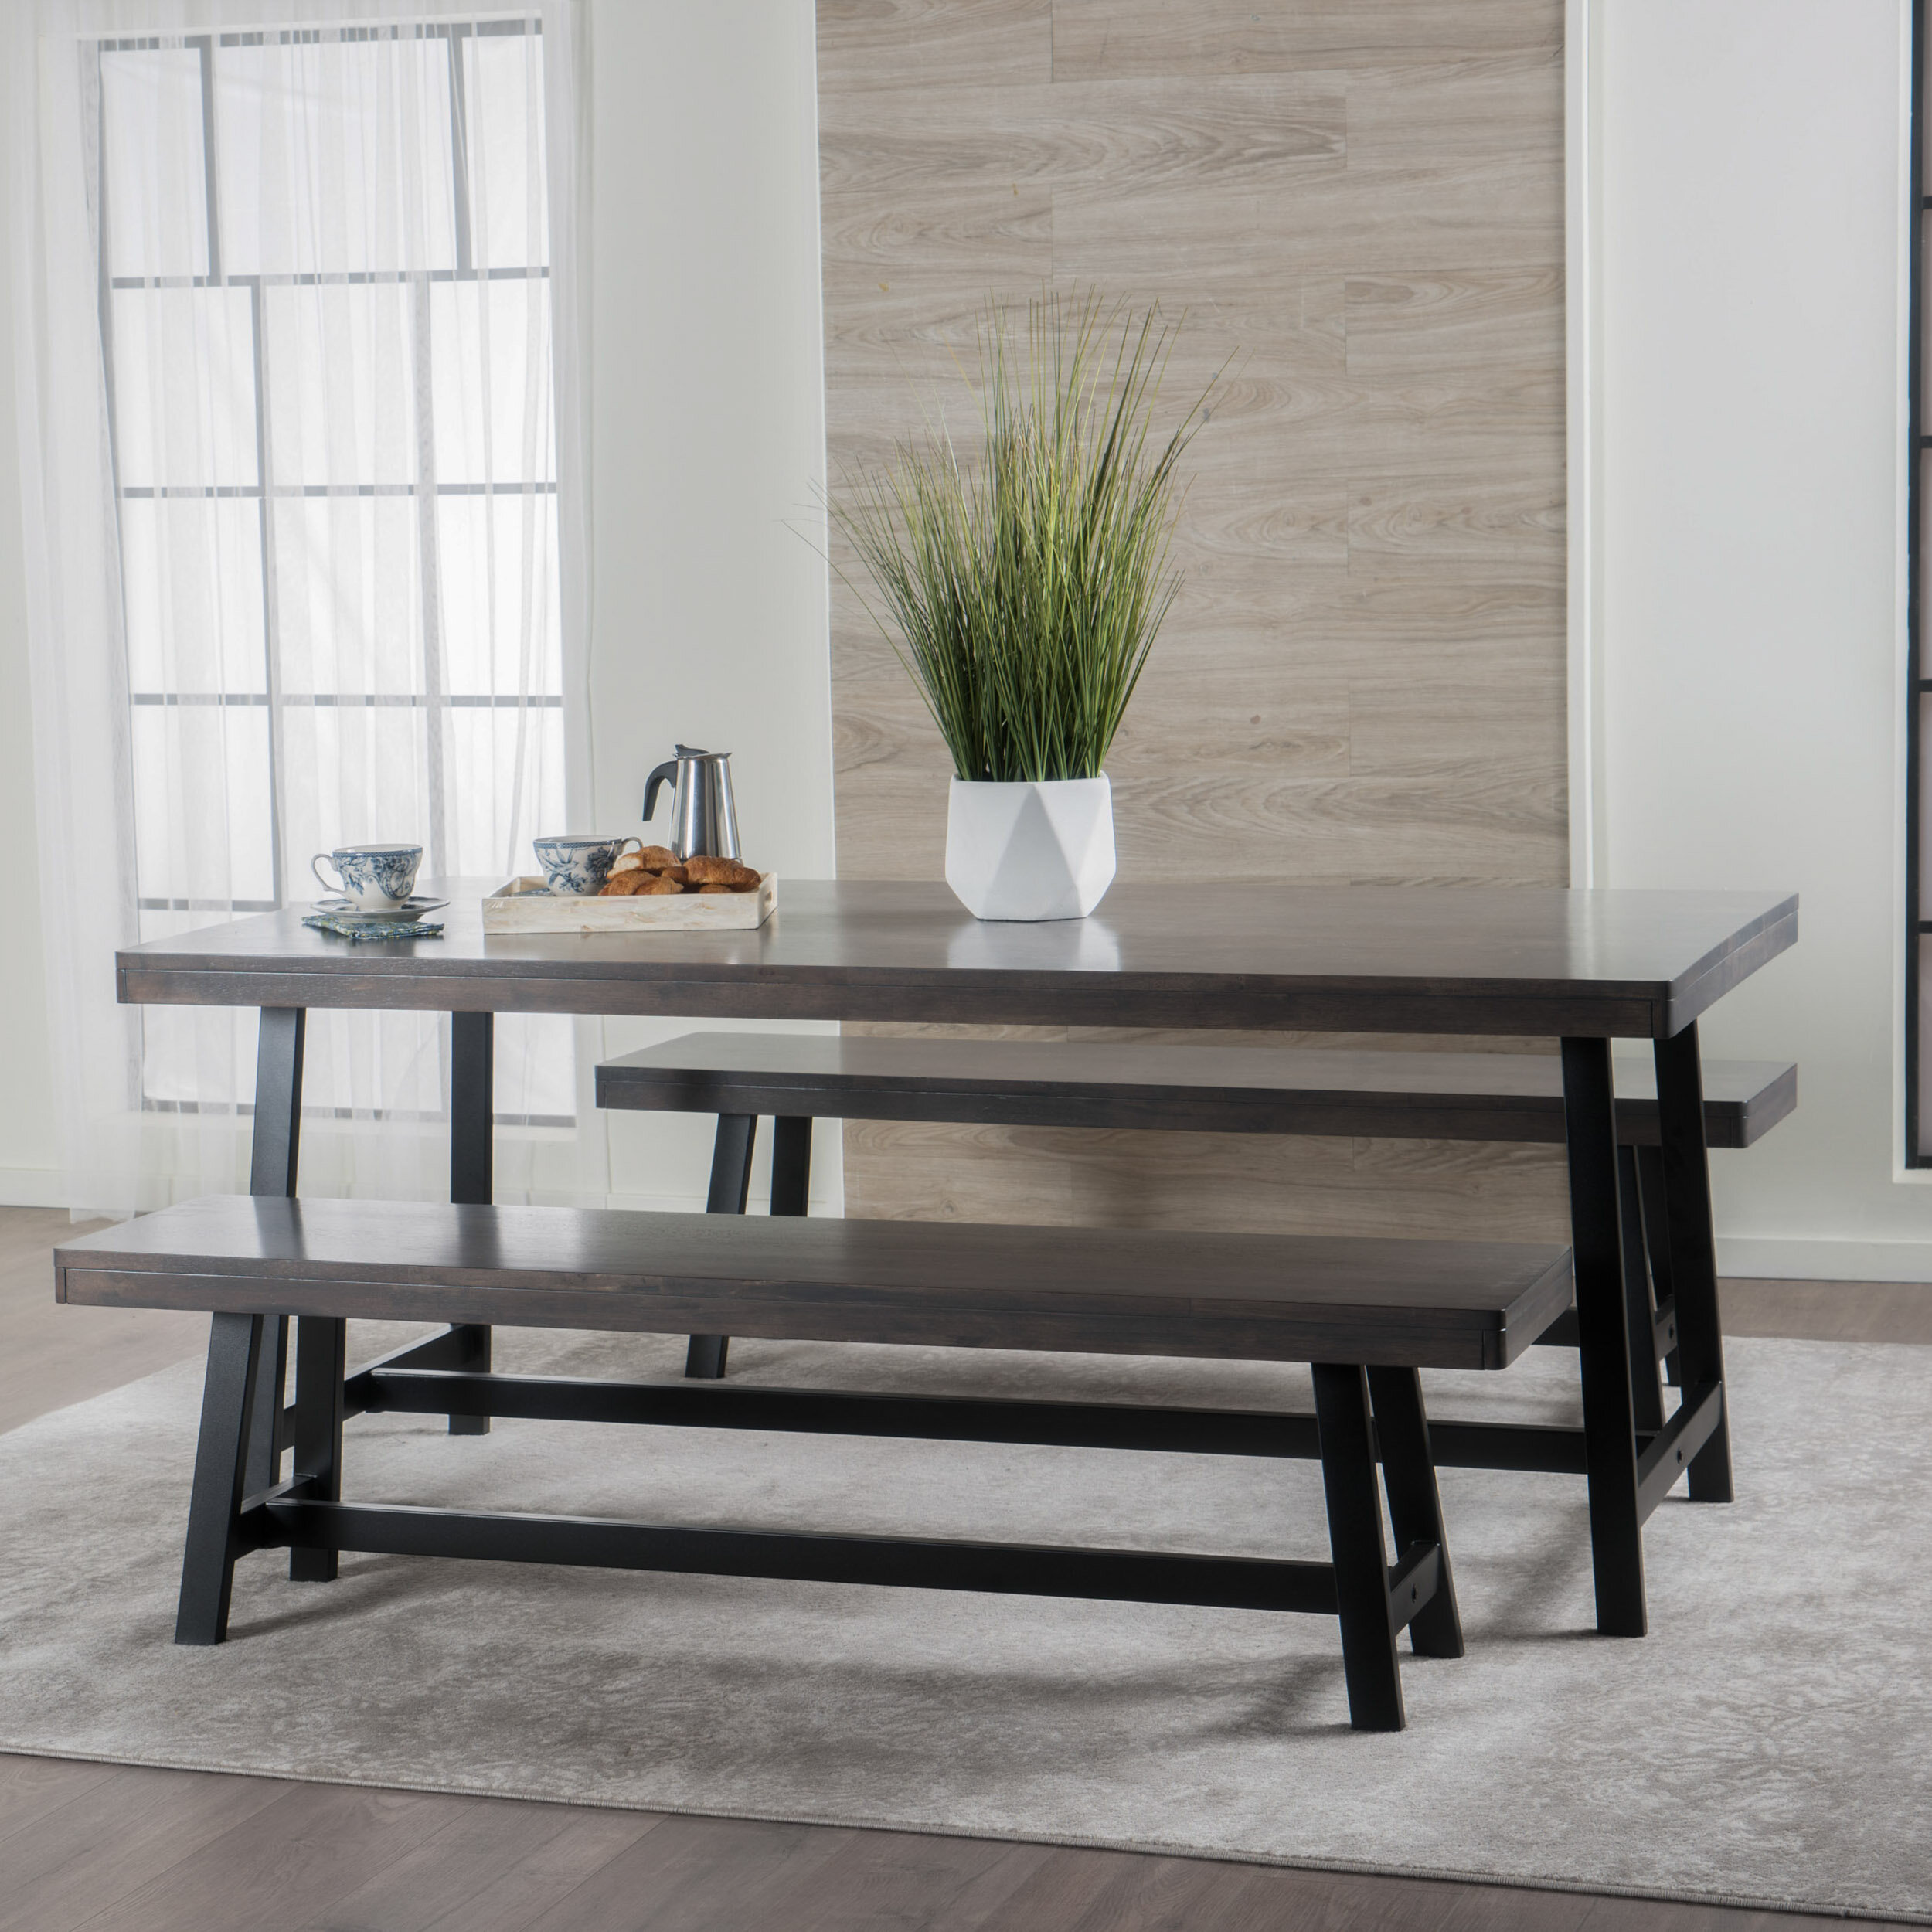 Exceptionnel Dining Table With Bench Kitchen U0026 Dining Room Sets Youu0027ll ...